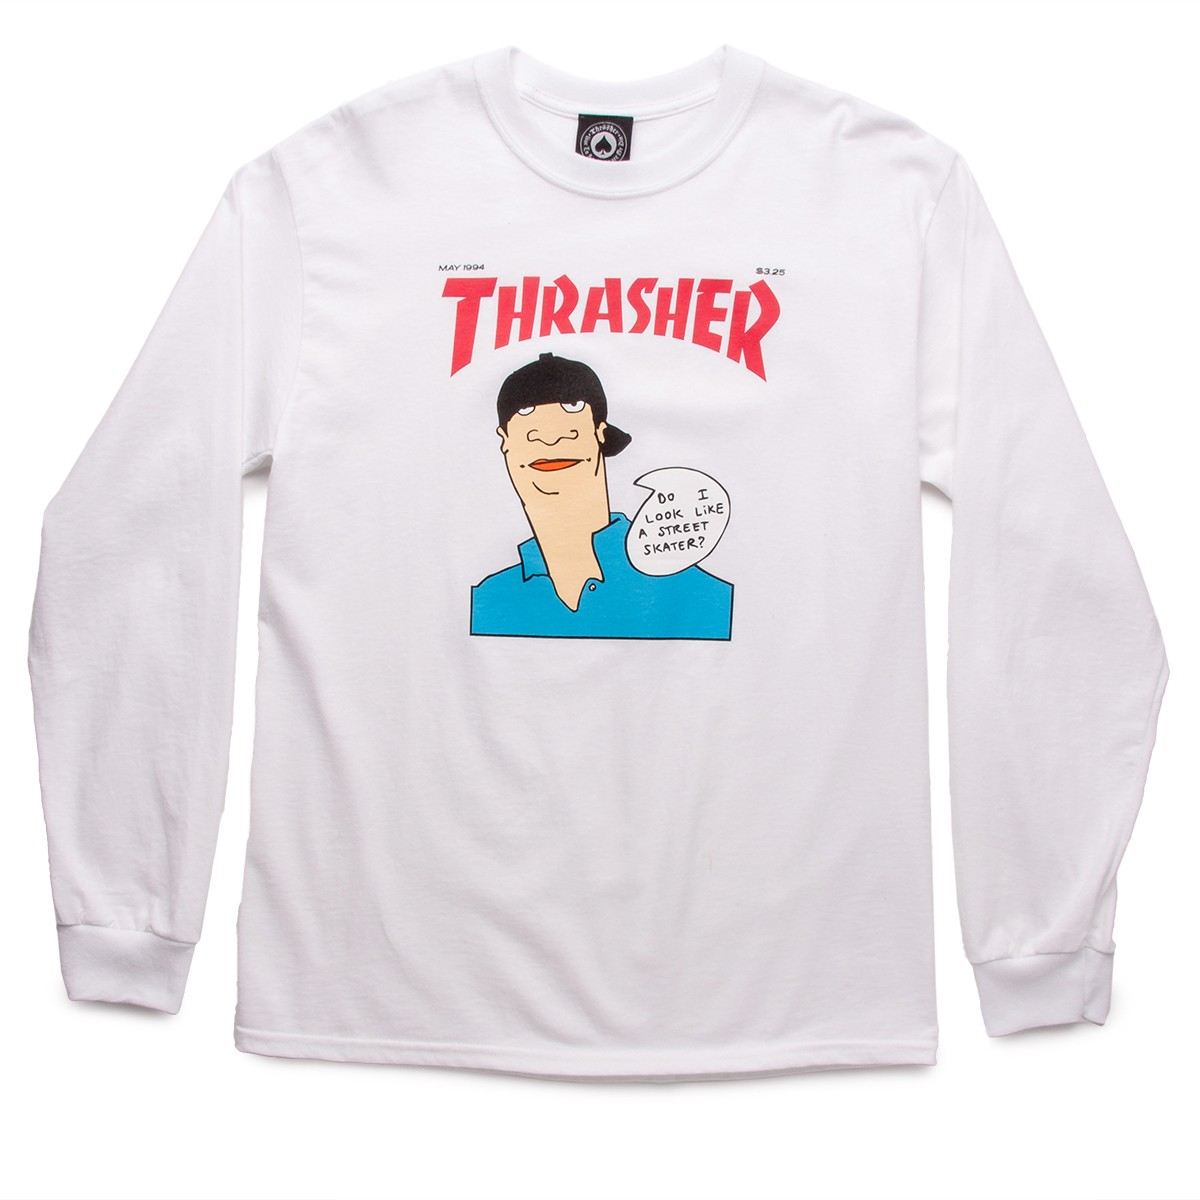 thrasher-gonz-cover-long-sleeve-t-shirt-white-1 3.1506722098.jpg 6a51ac57a181